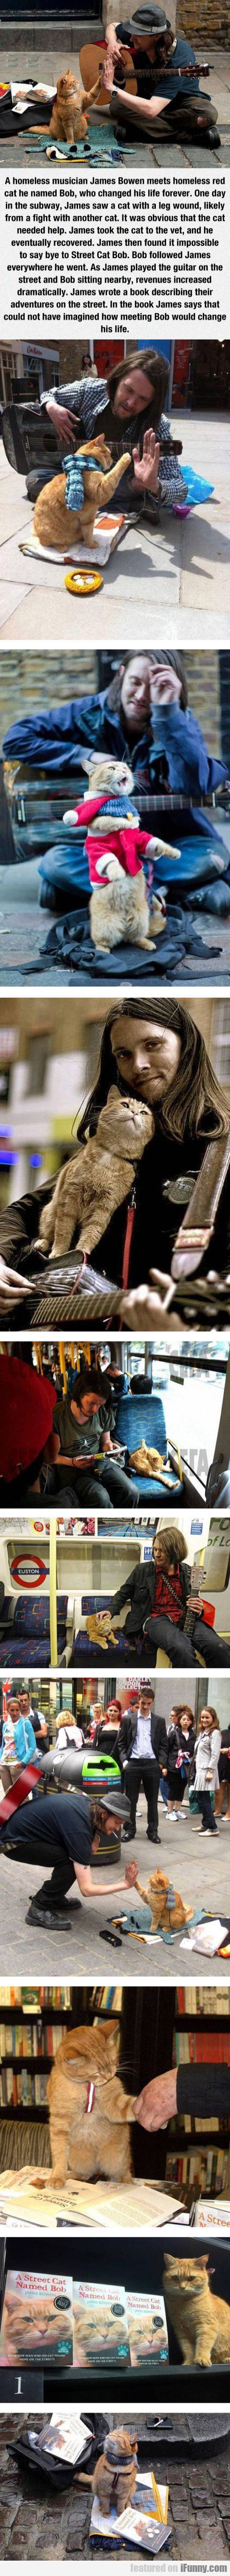 A Homeless Musician And His Cat...